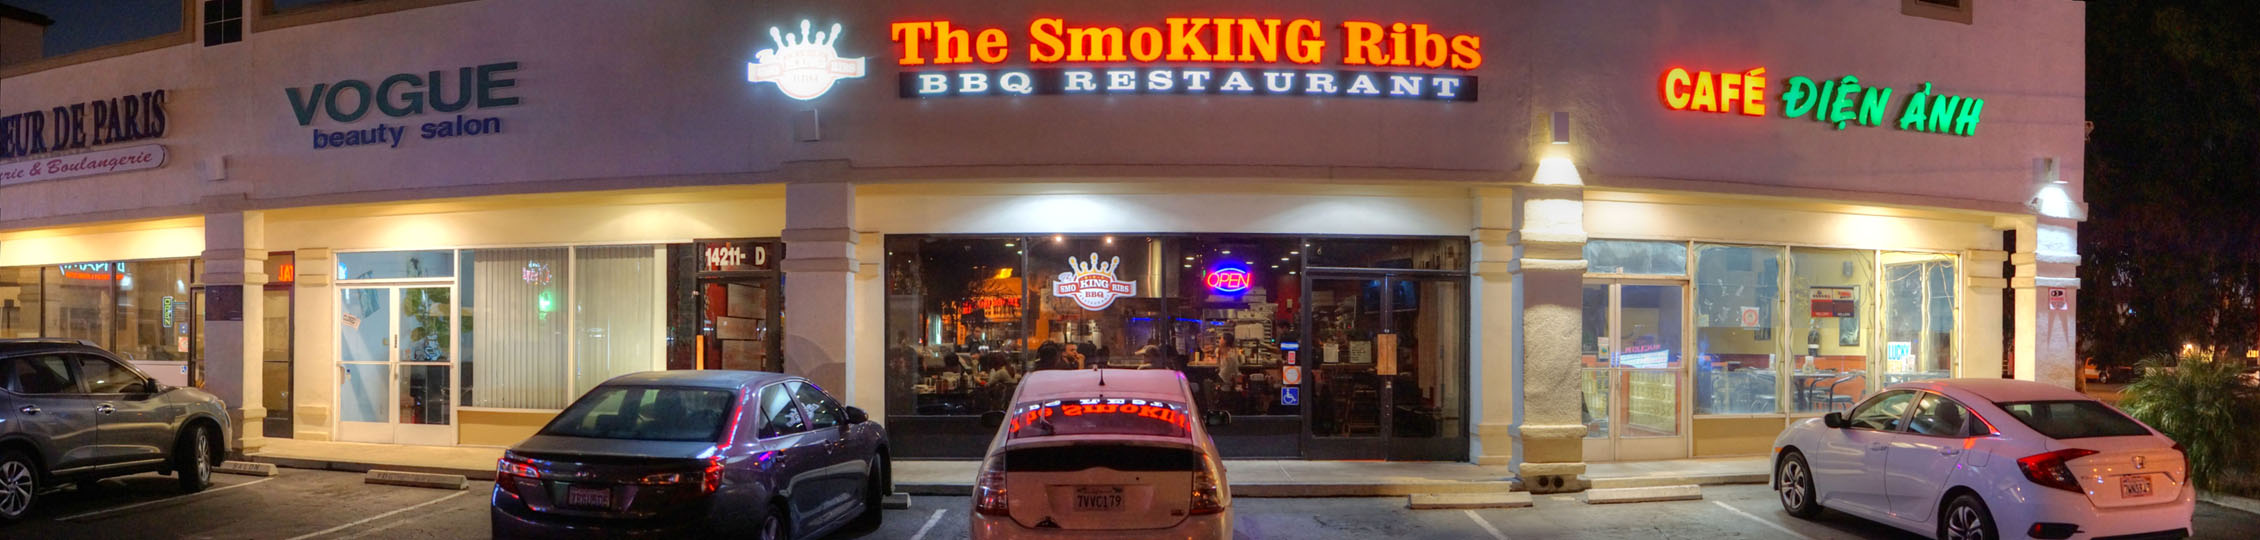 The Smoking Ribs Exterior